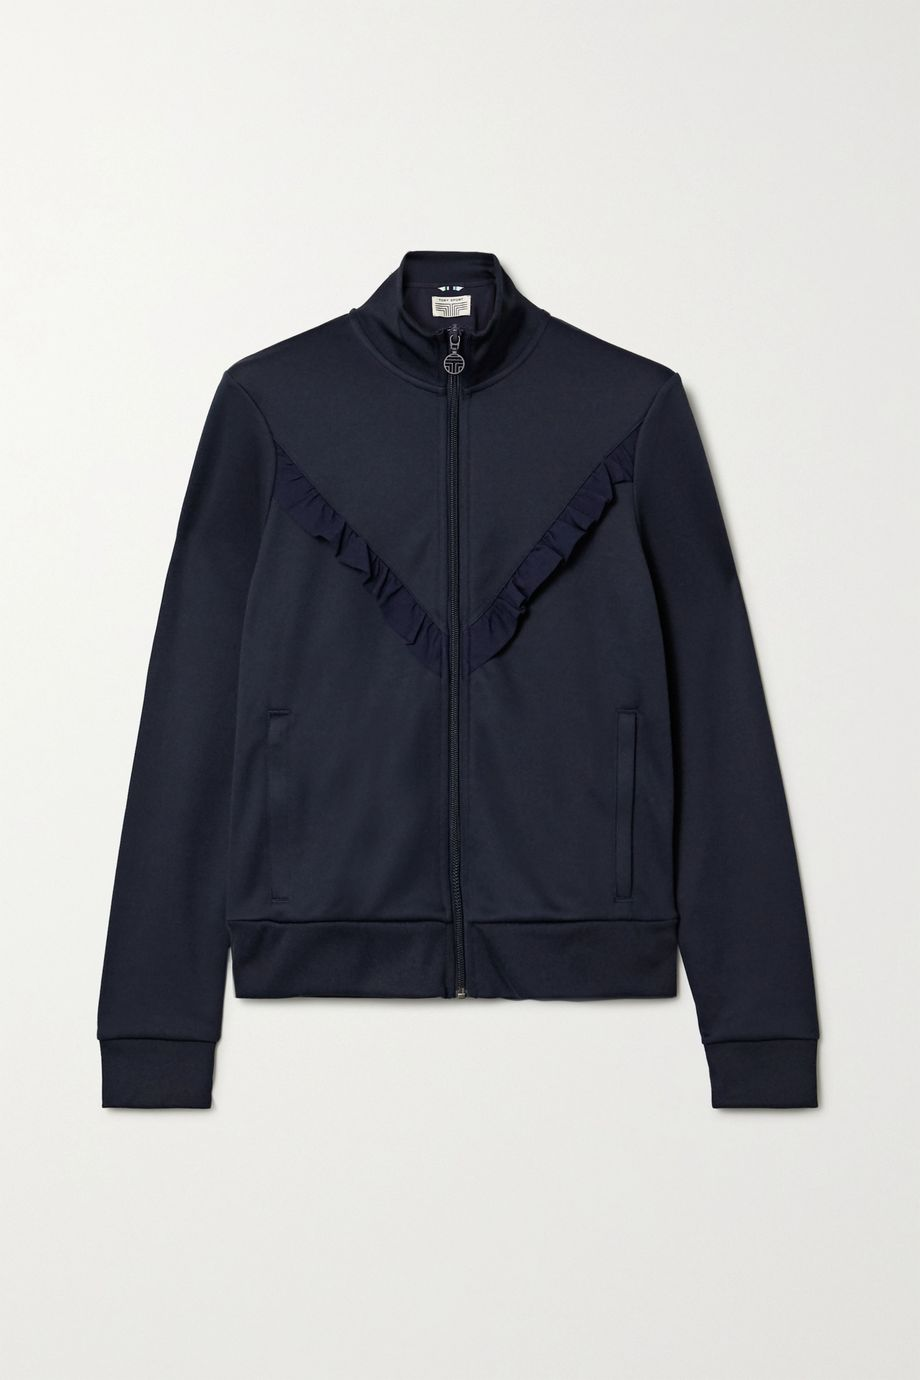 Tory Sport Ruffled stretch-knit track jacket